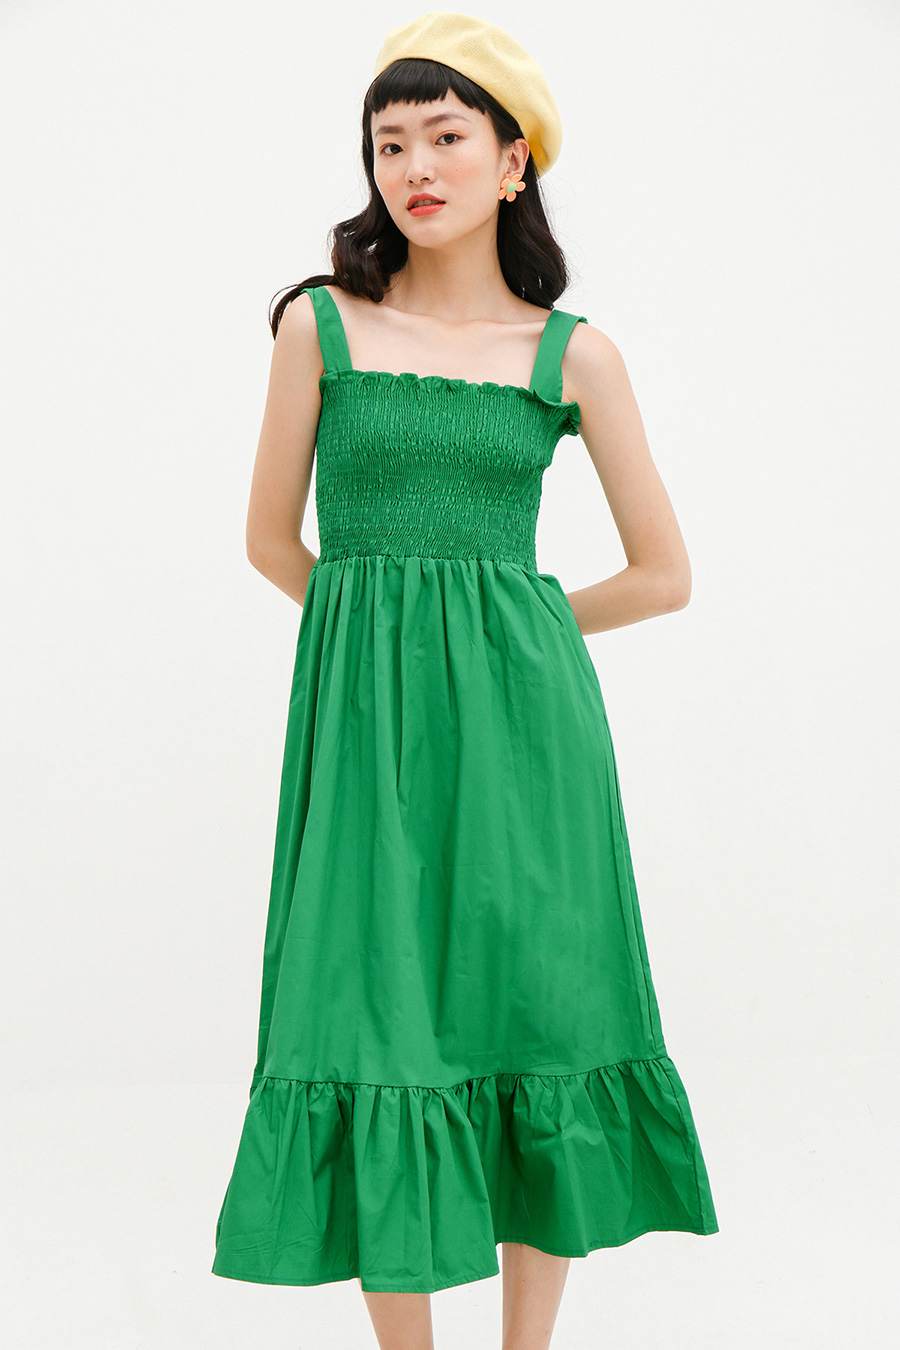 GALOPIN DRESS - EMERALD